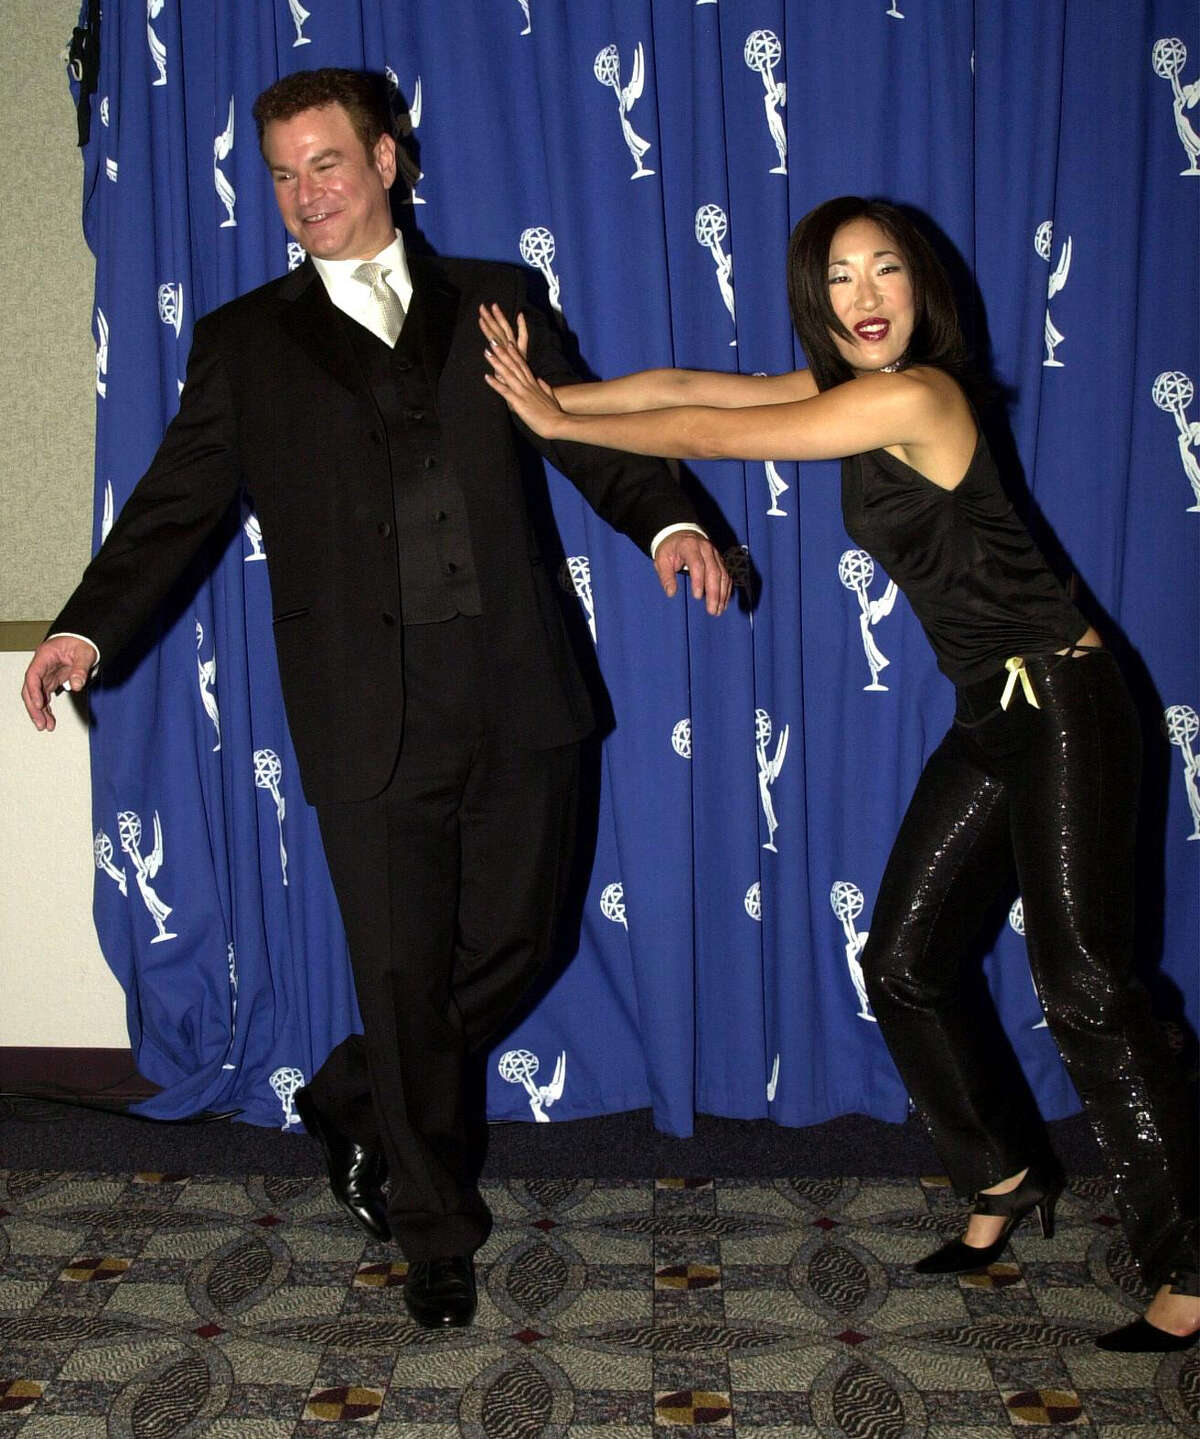 Sandra Oh with Robert Wuhl in 2000, when they starred in the HBO series